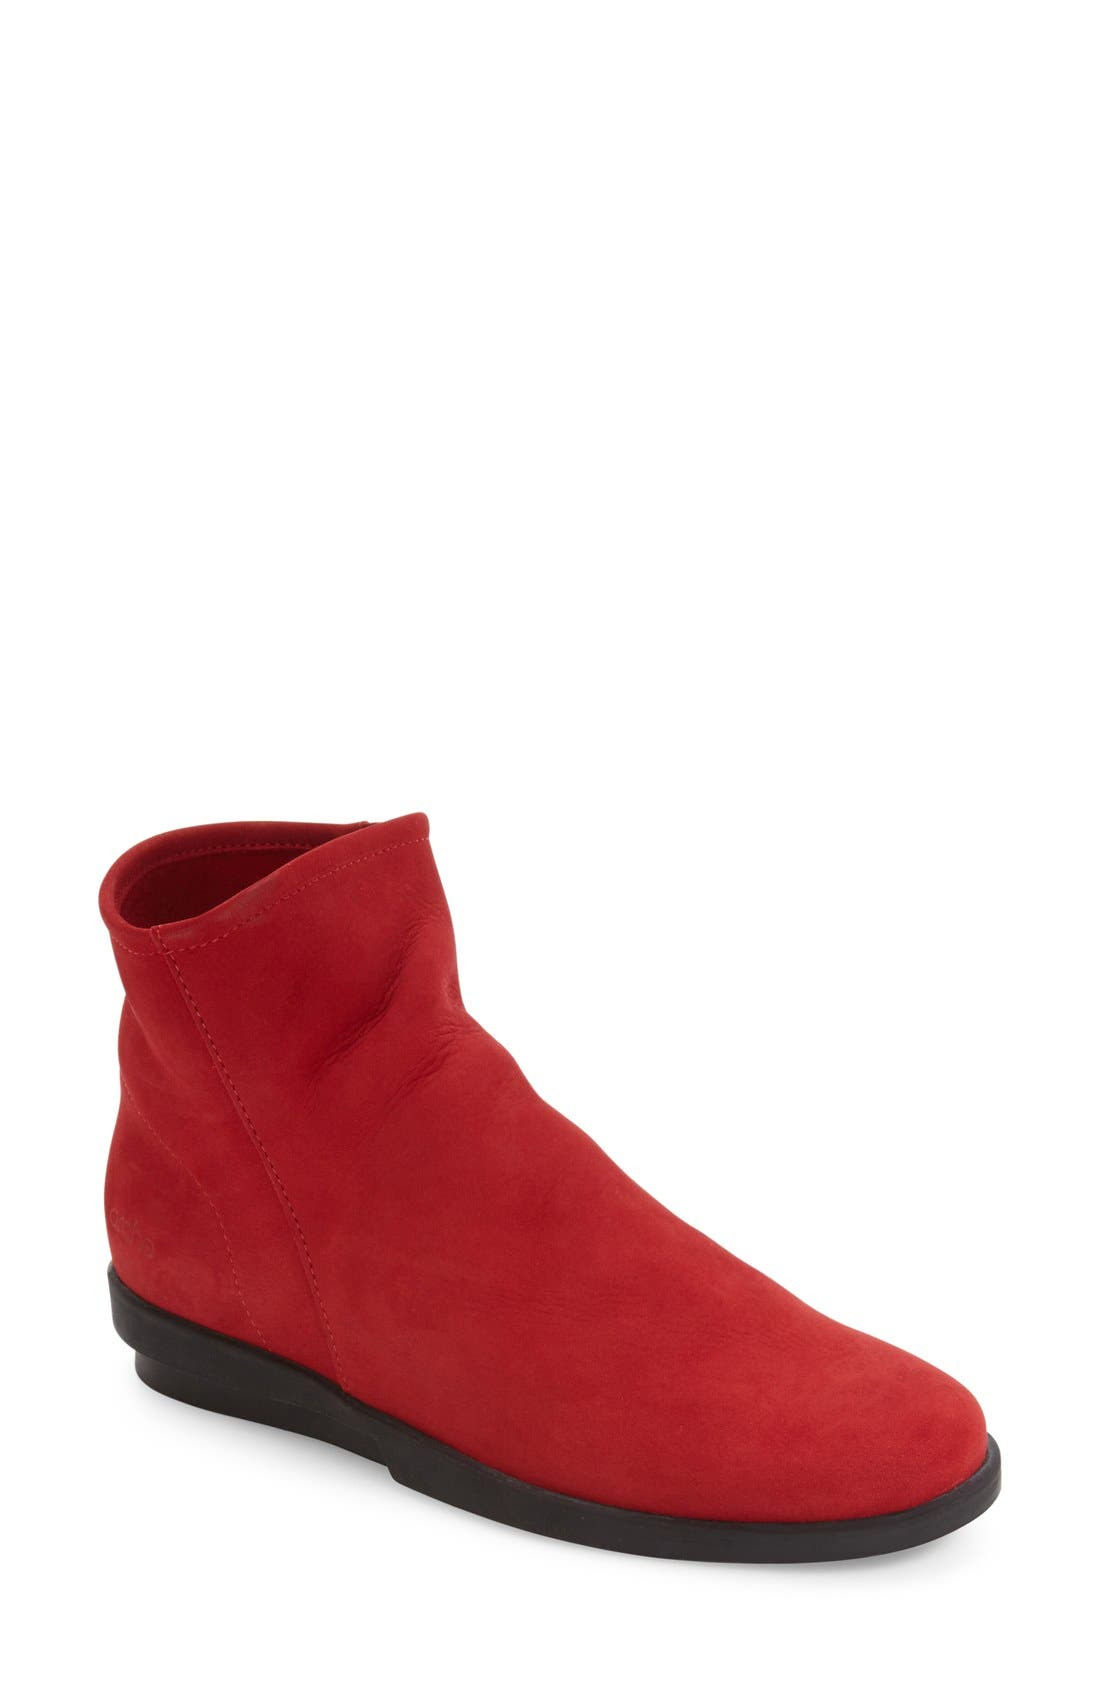 ARCHE 'Detyam' Wedge Zip Bootie